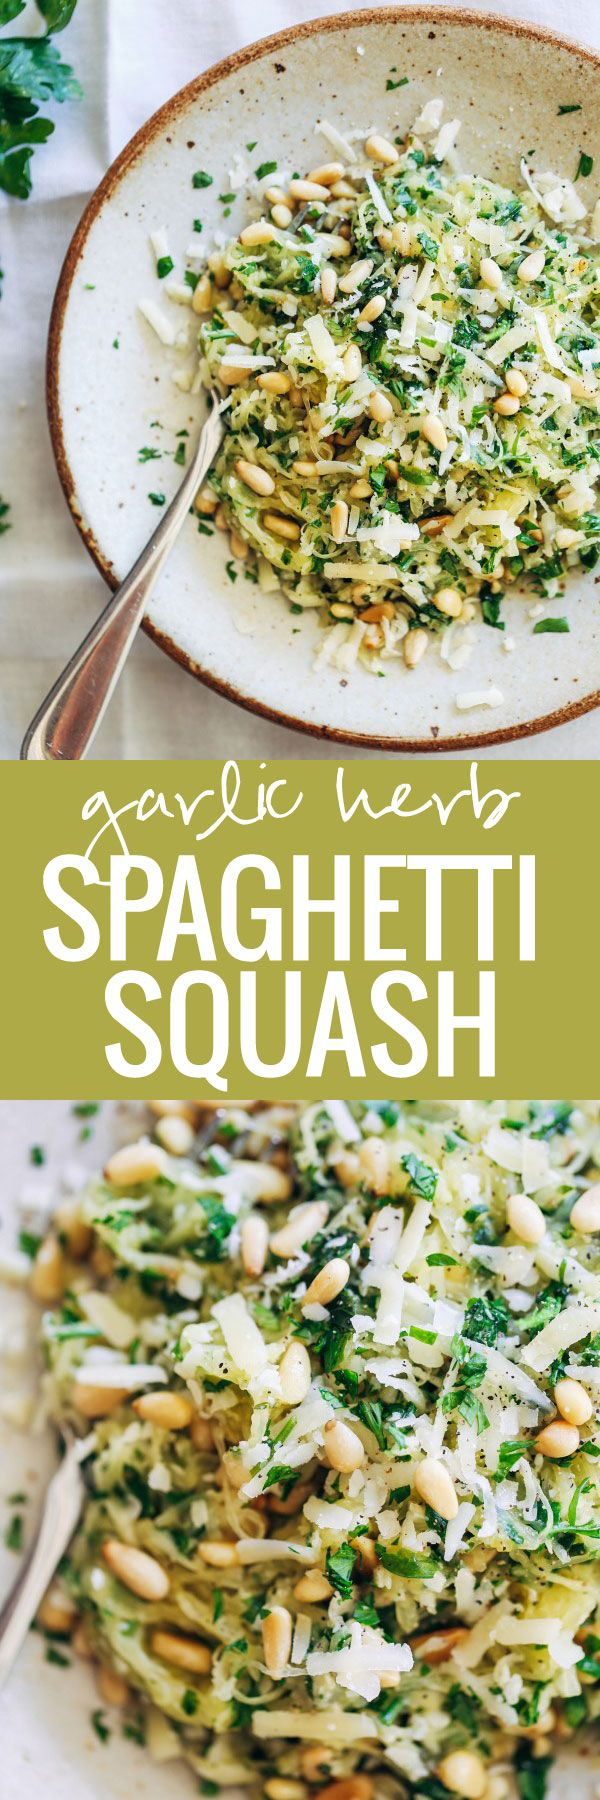 Garlic Spaghetti Squash With Herbs